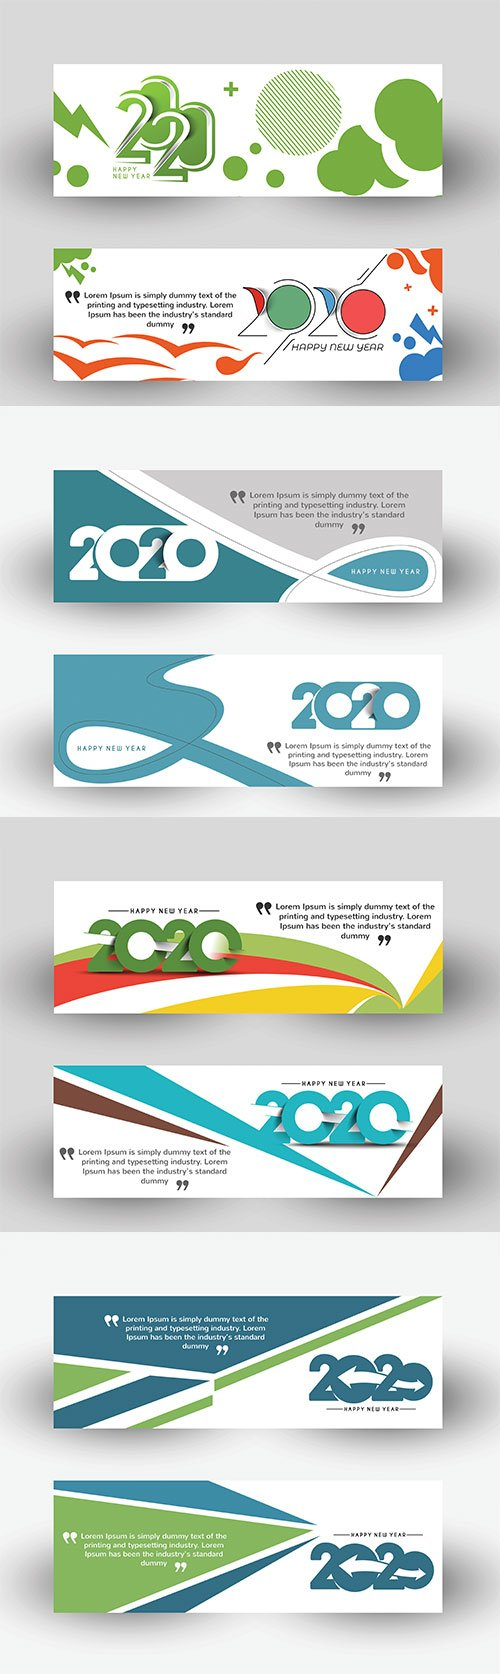 New Year Holiday design elements for holiday cards